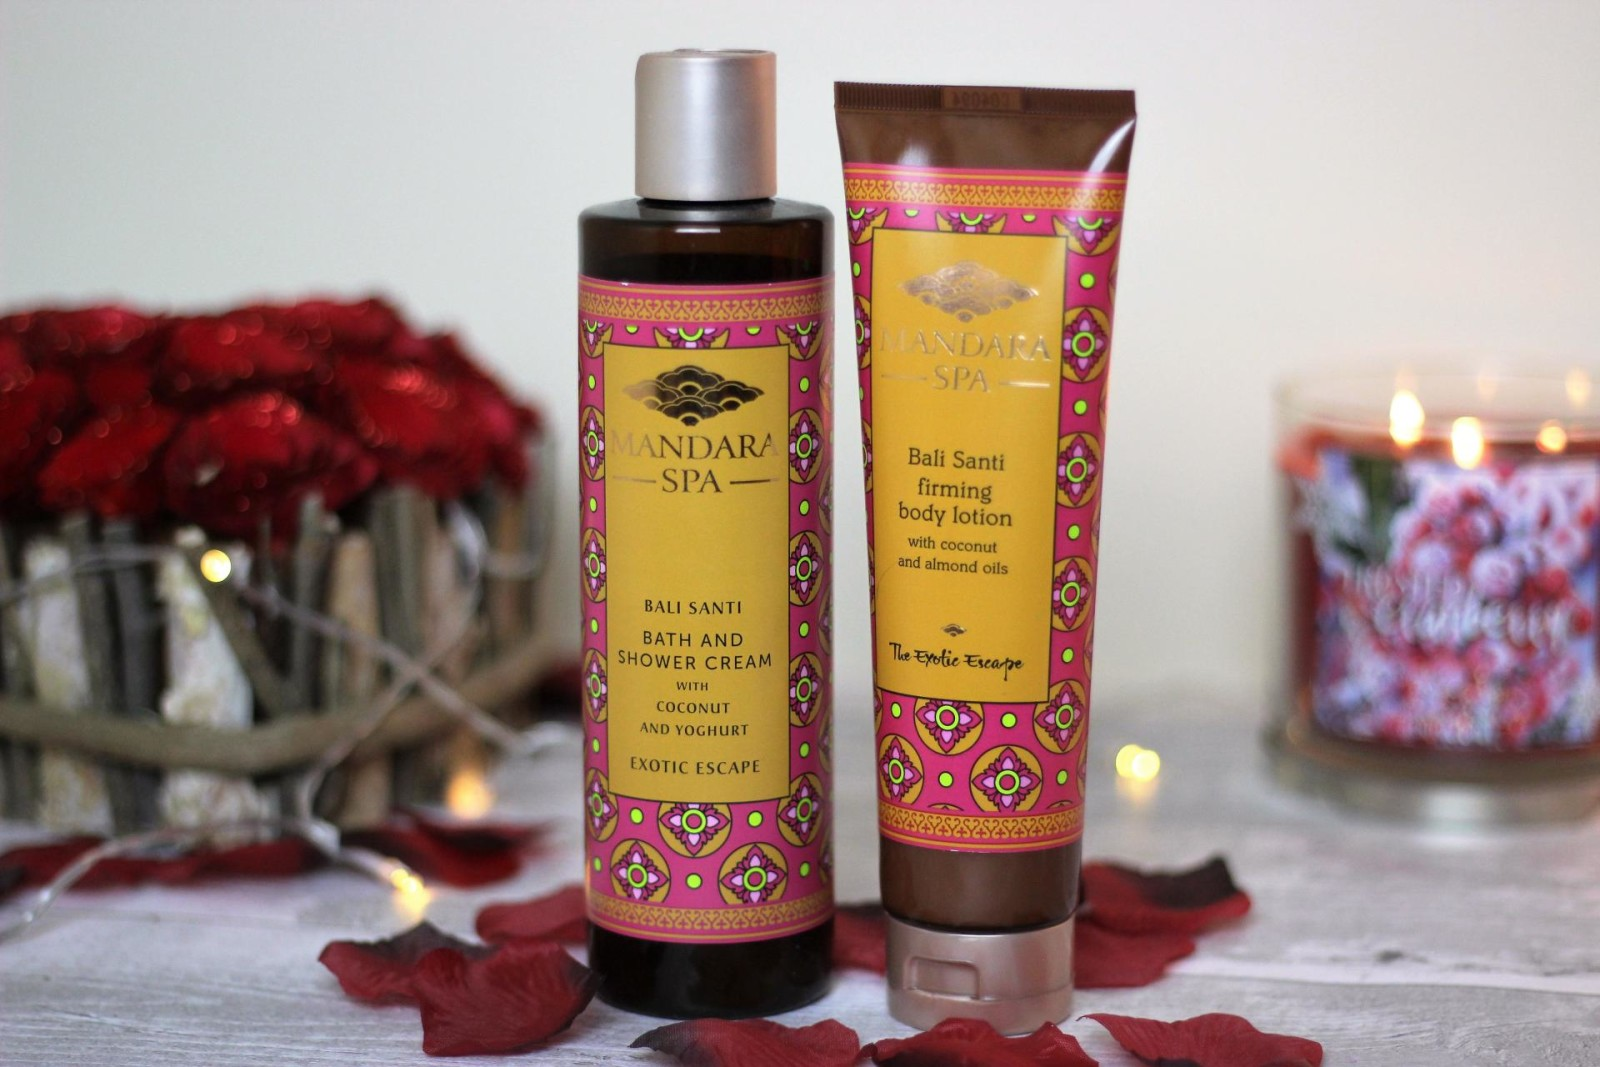 Mandara Spa Bali Santi Bath and Body Range